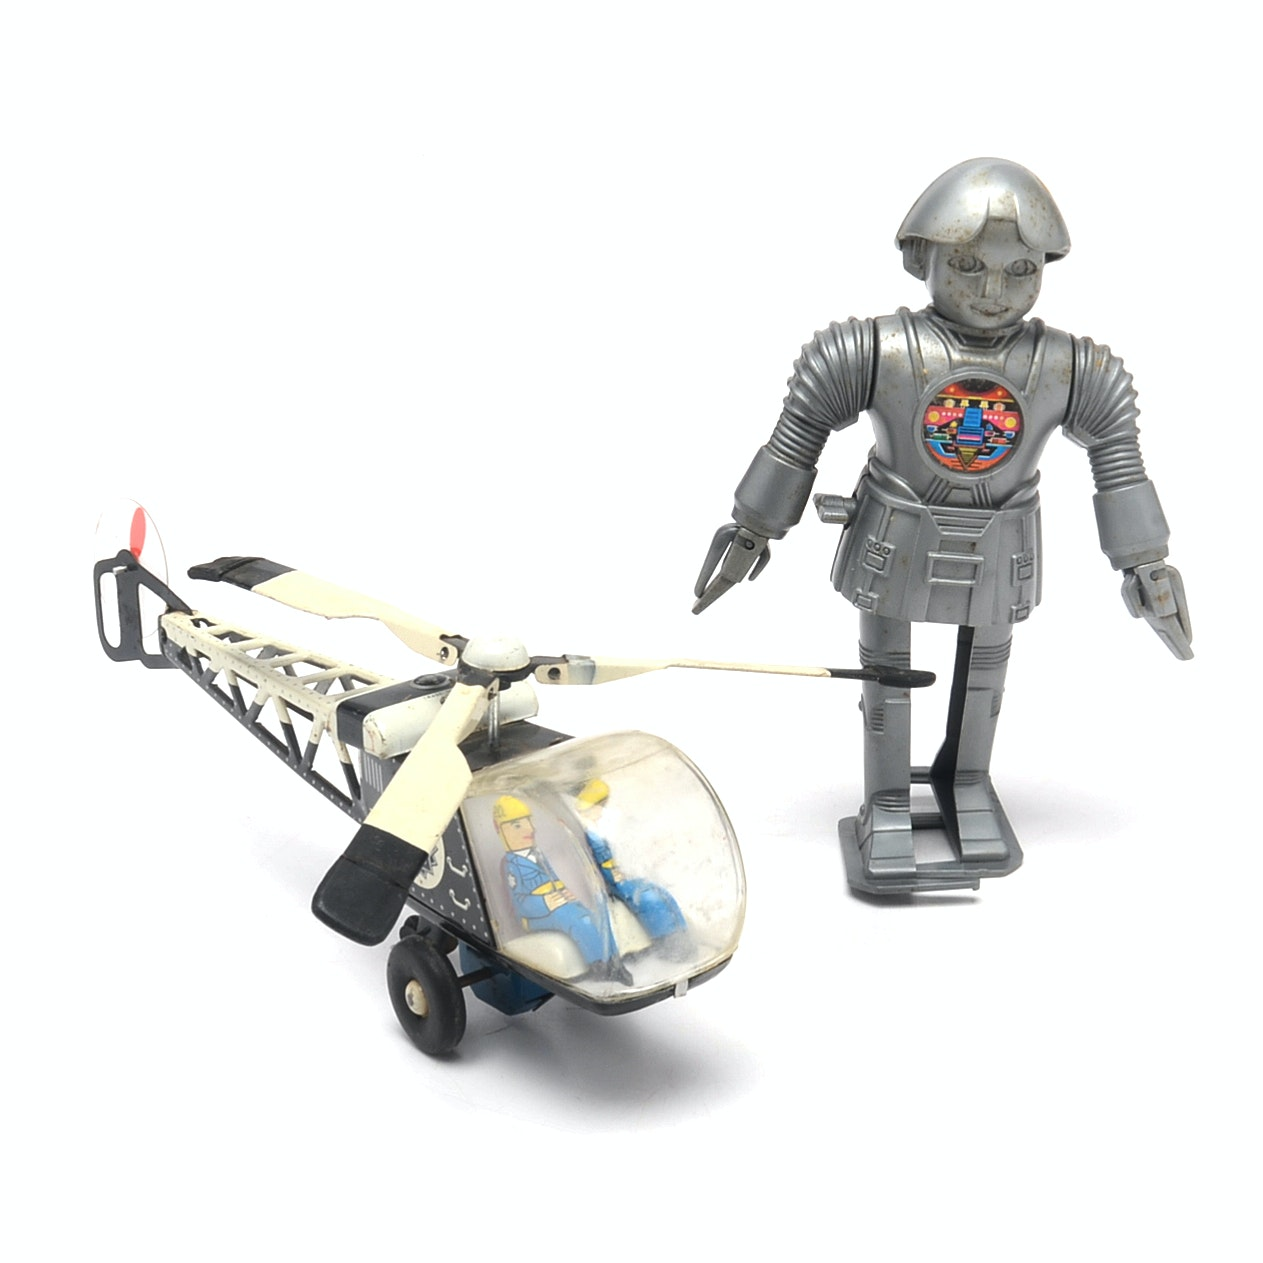 1960s Police Patrol Friction Helicopter and 1978 Twiggy Robot